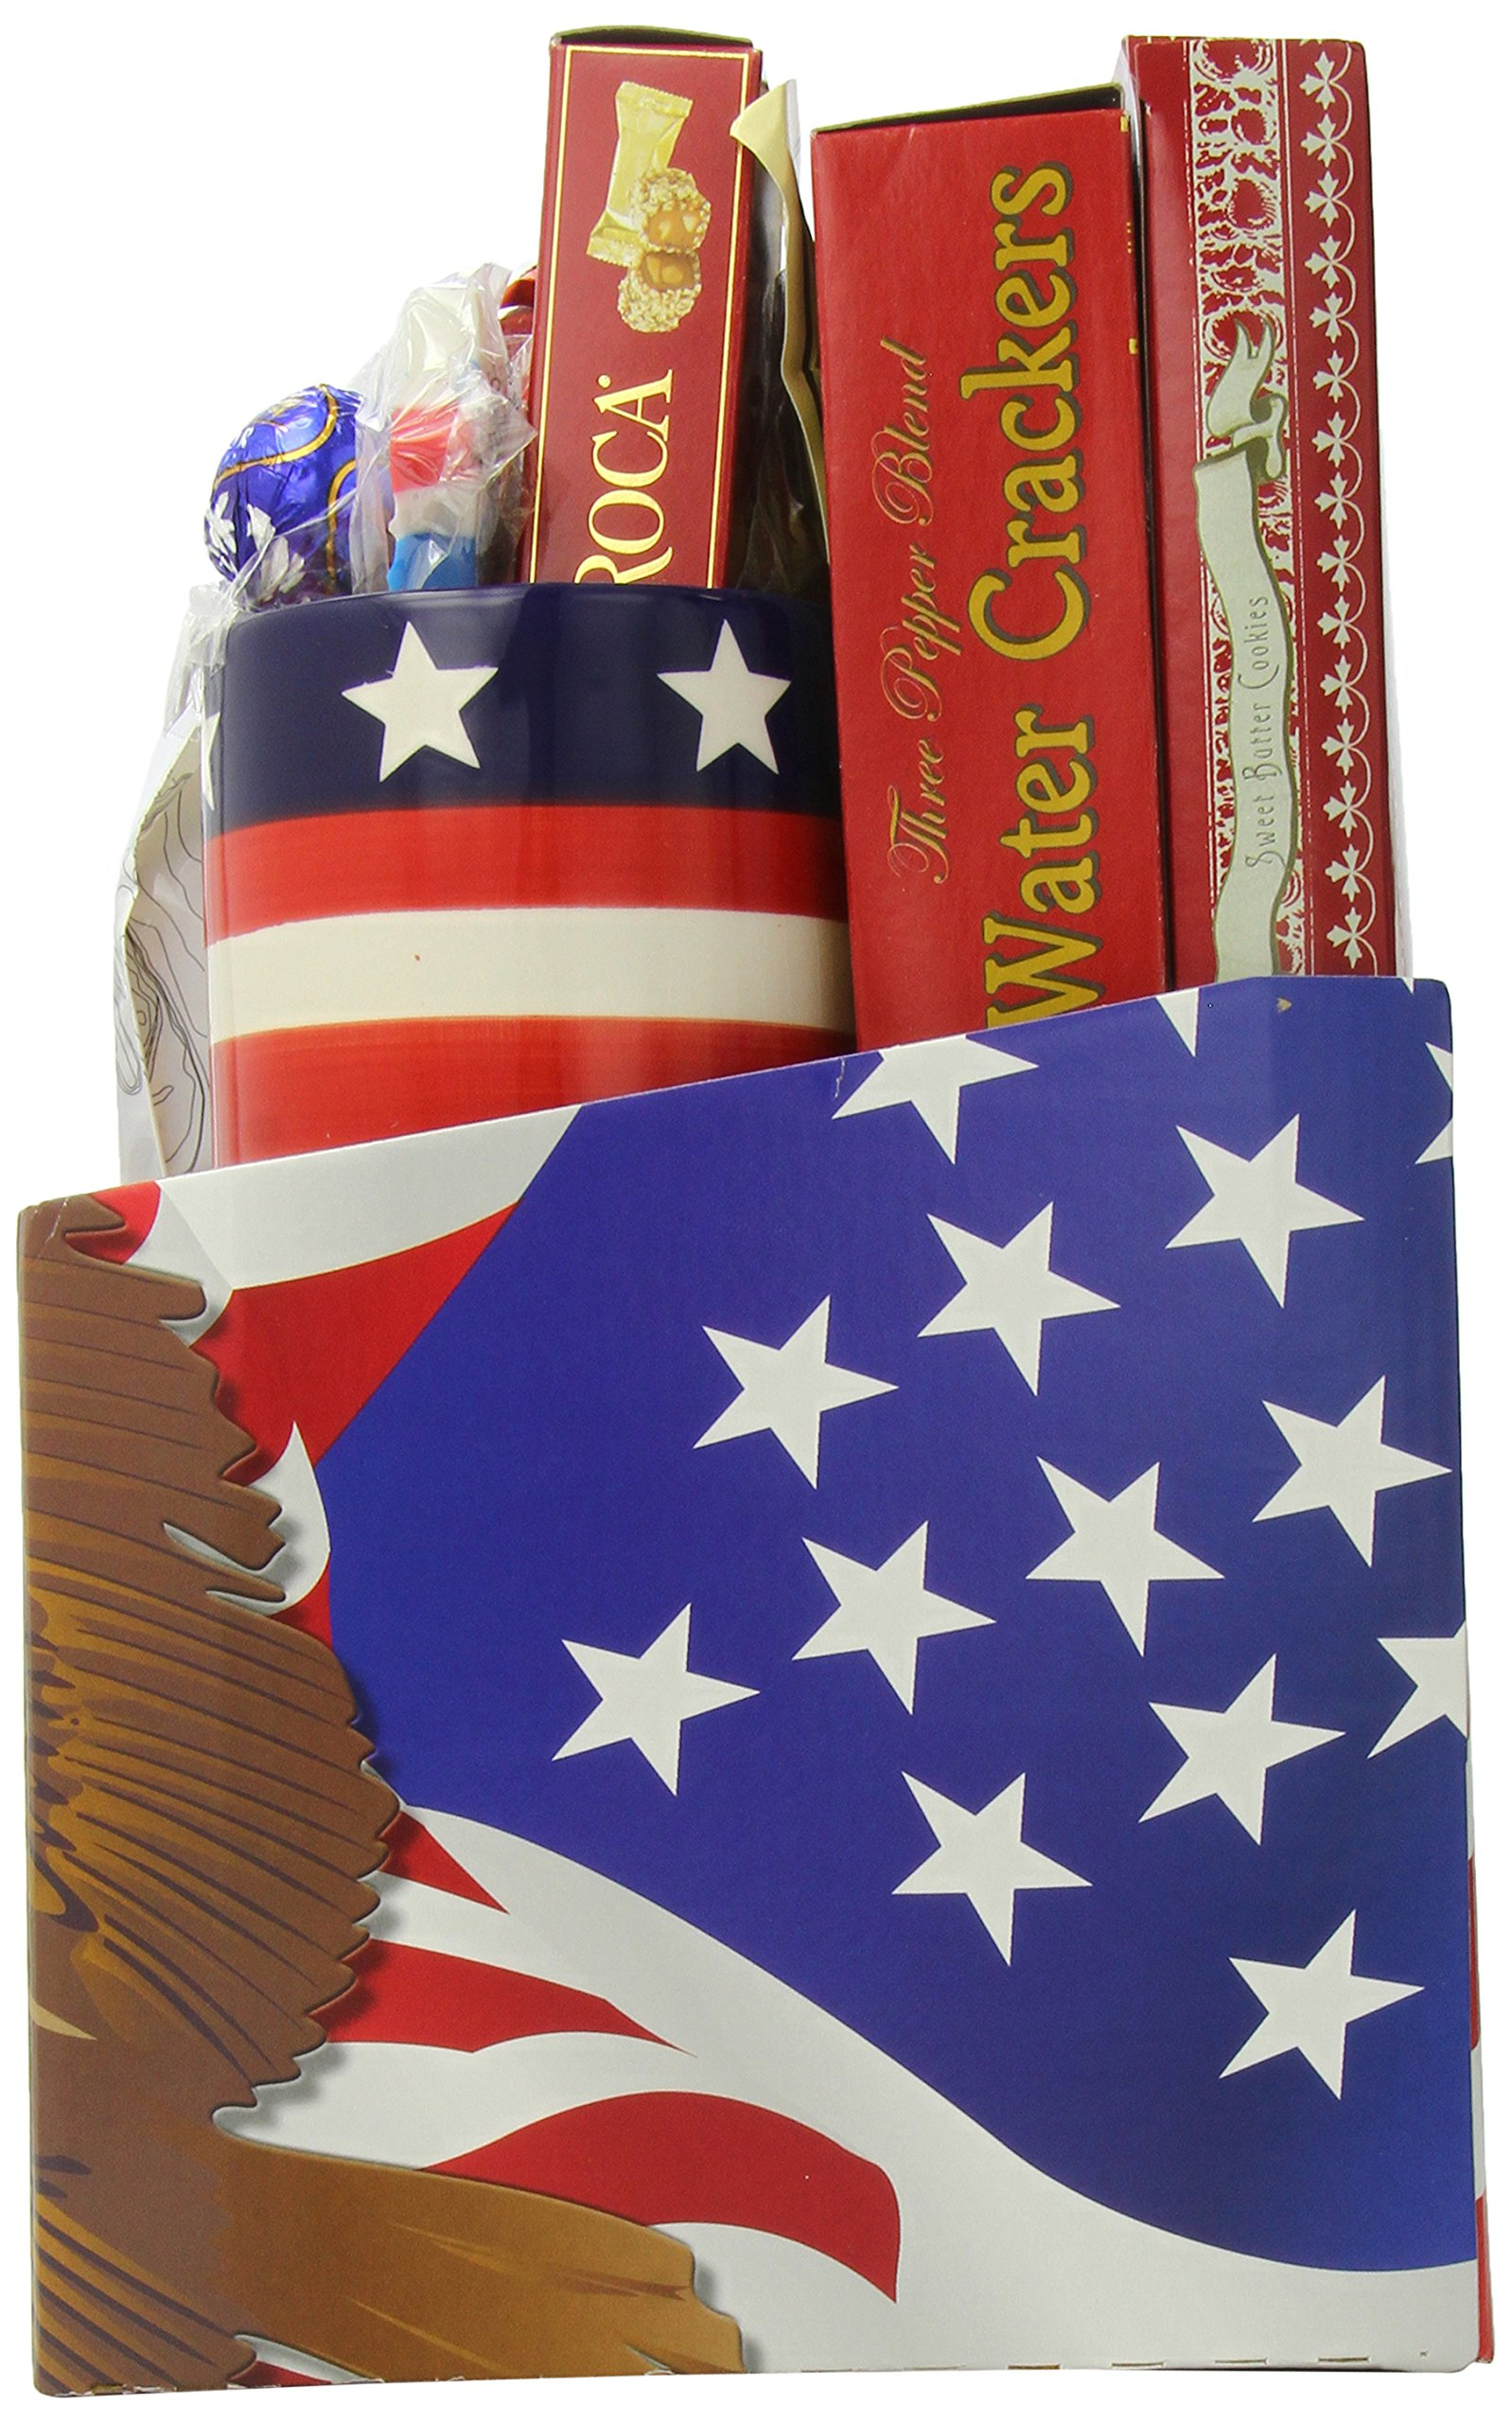 GreatArrivals Gift Baskets Enduring Freedom, Welcome Home Solider or Patriotic by GreatArrivals Gift Baskets (Image #3)